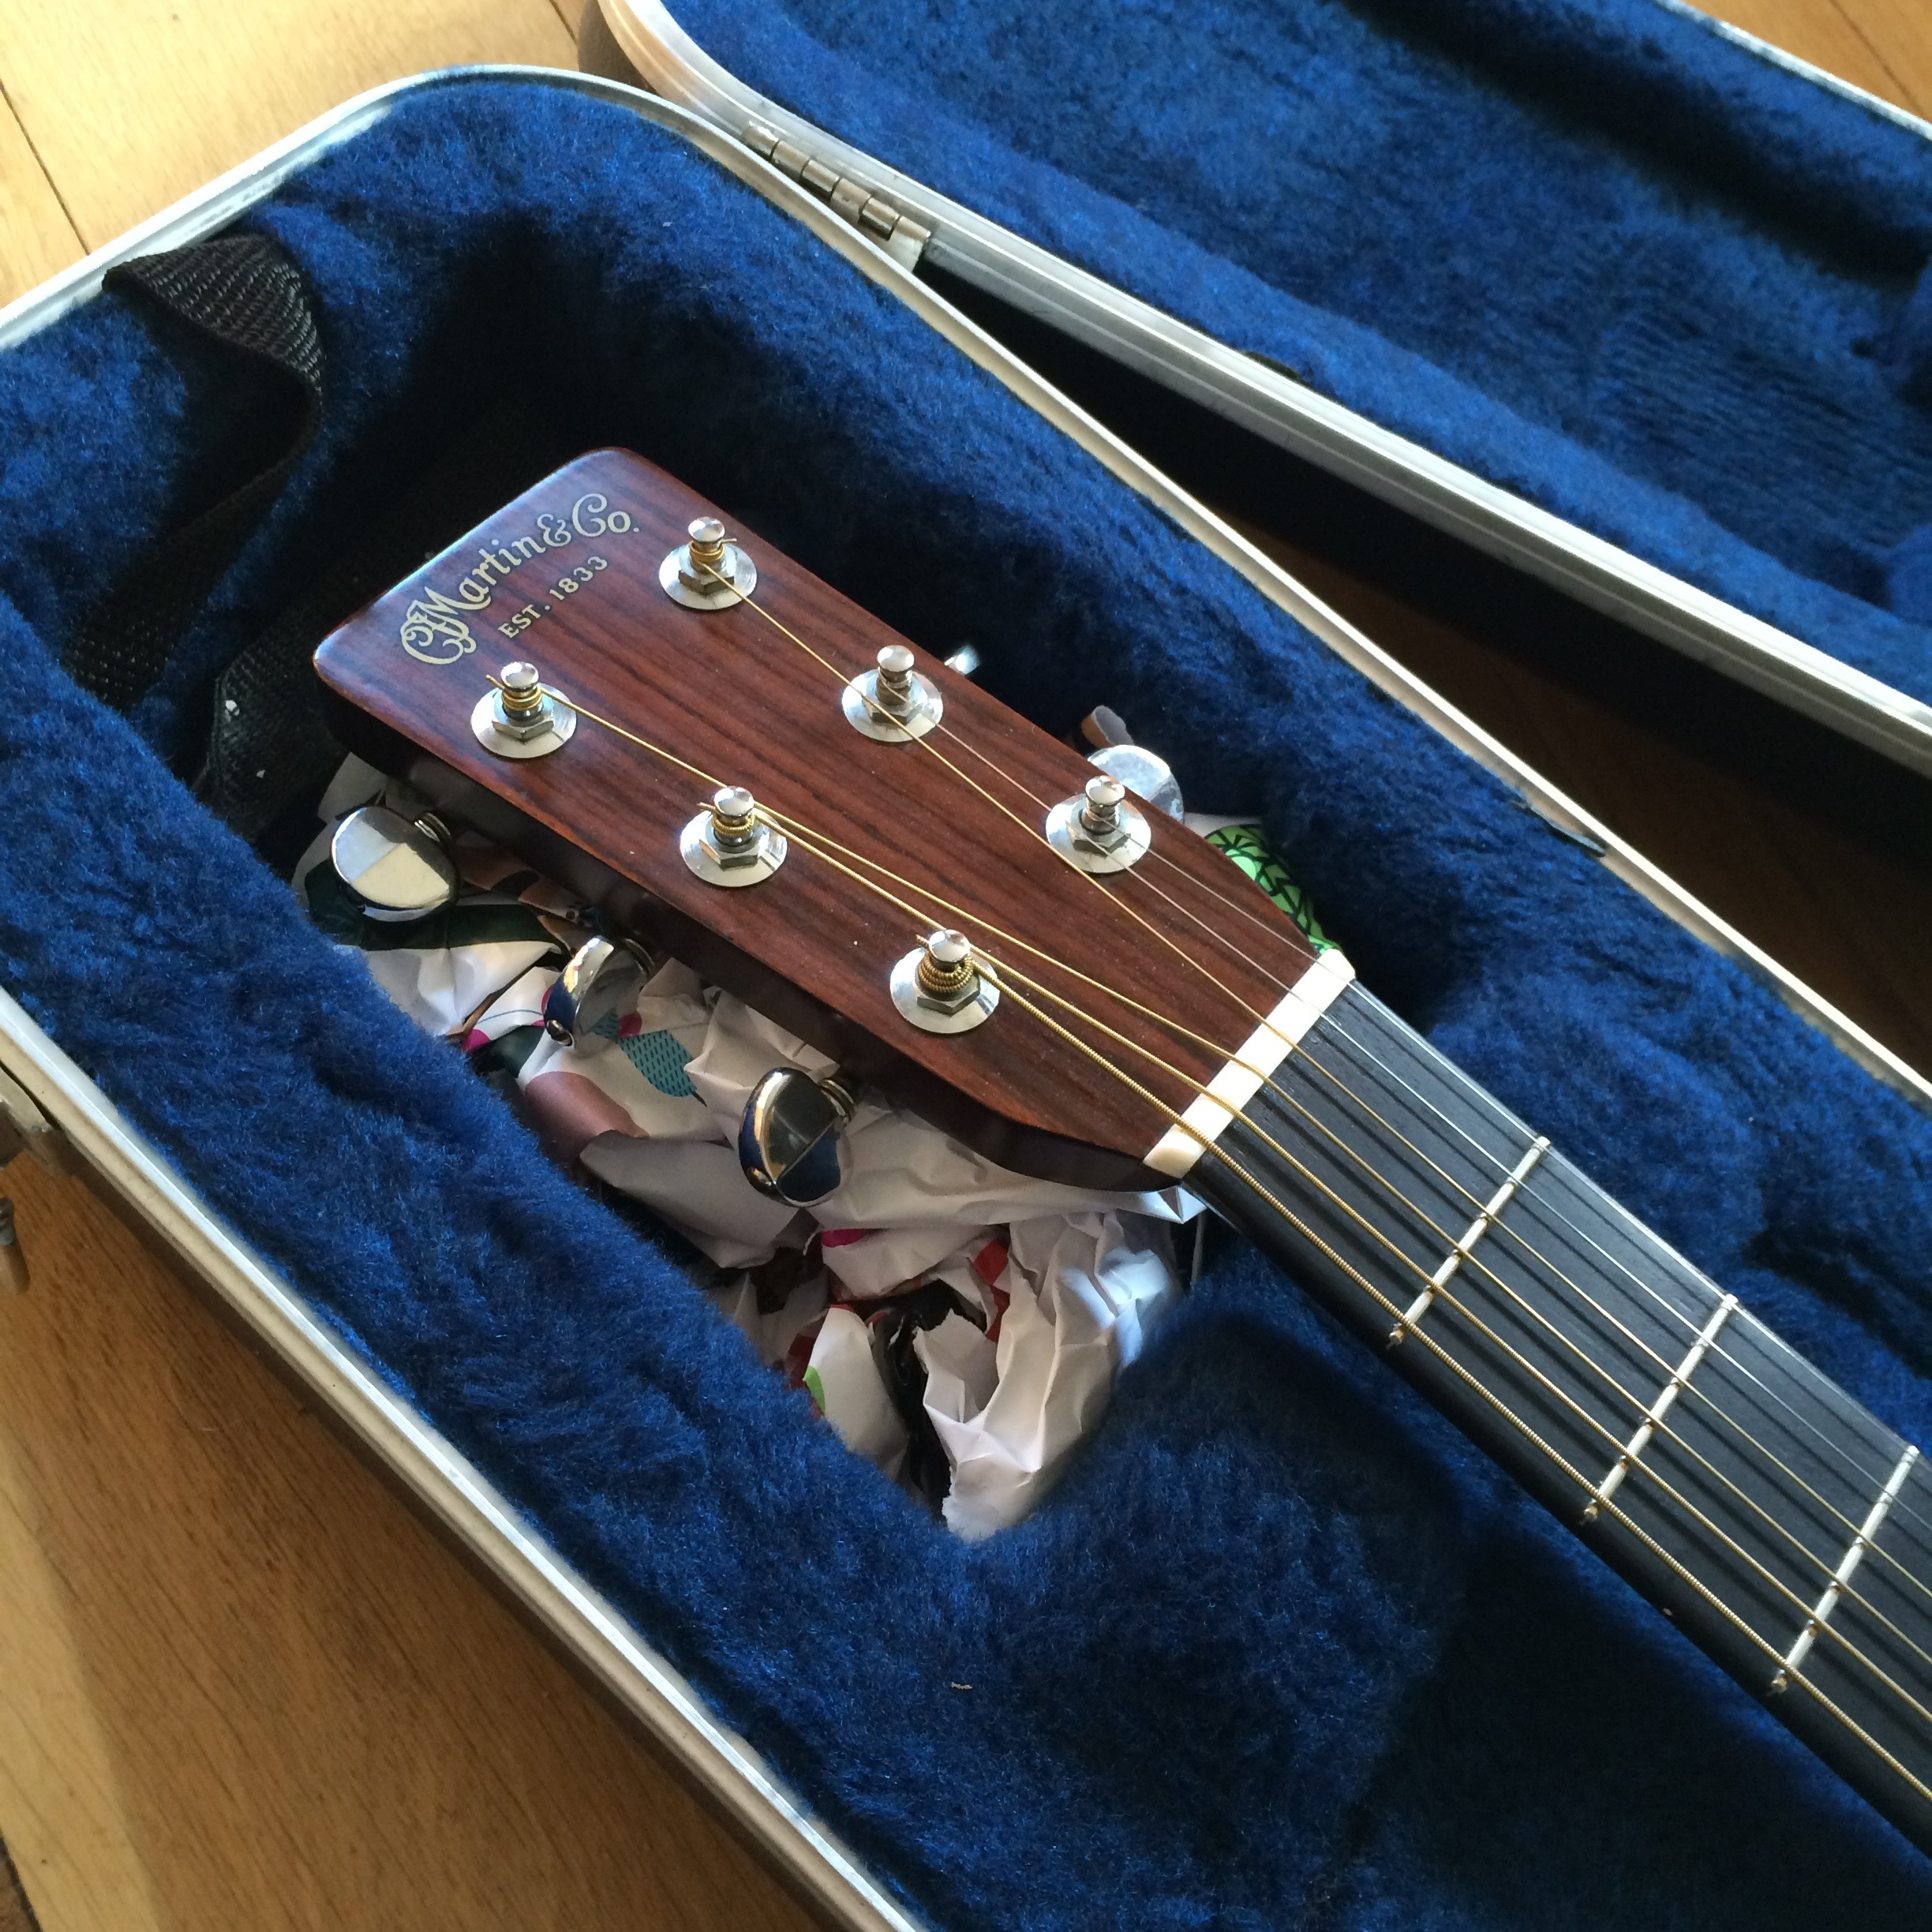 Crumpled paper under the headstock helps prevent broken necks. You want most support as shown.